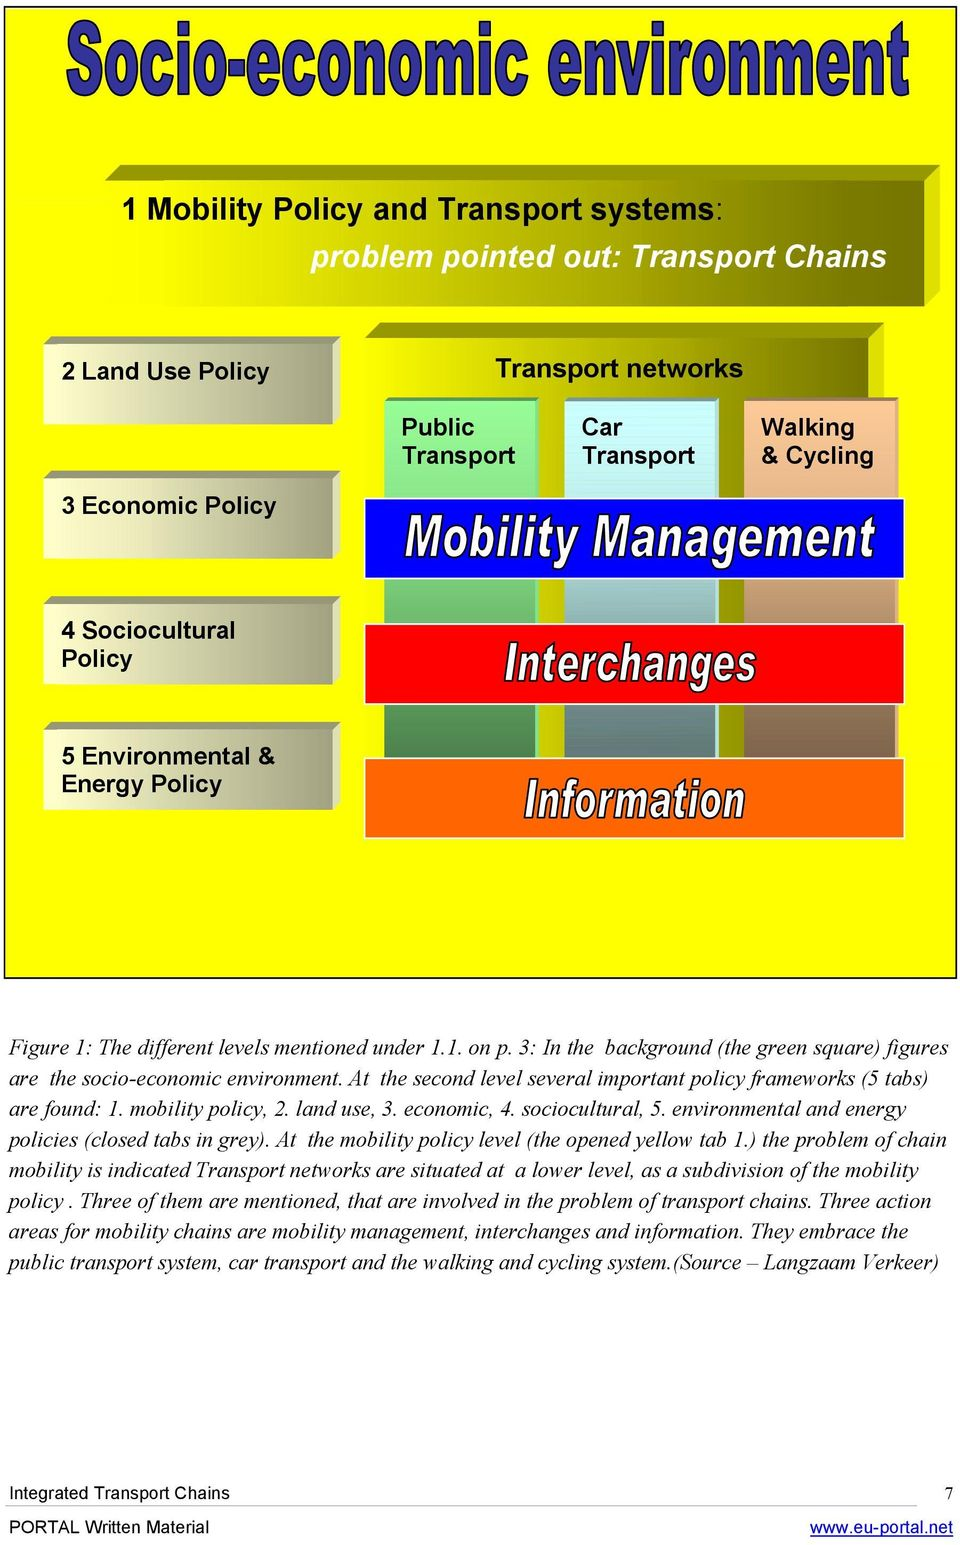 At the second level several important policy frameworks (5 tabs) are found: 1. mobility policy, 2. land use, 3. economic, 4. sociocultural, 5. environmental and energy policies (closed tabs in grey).